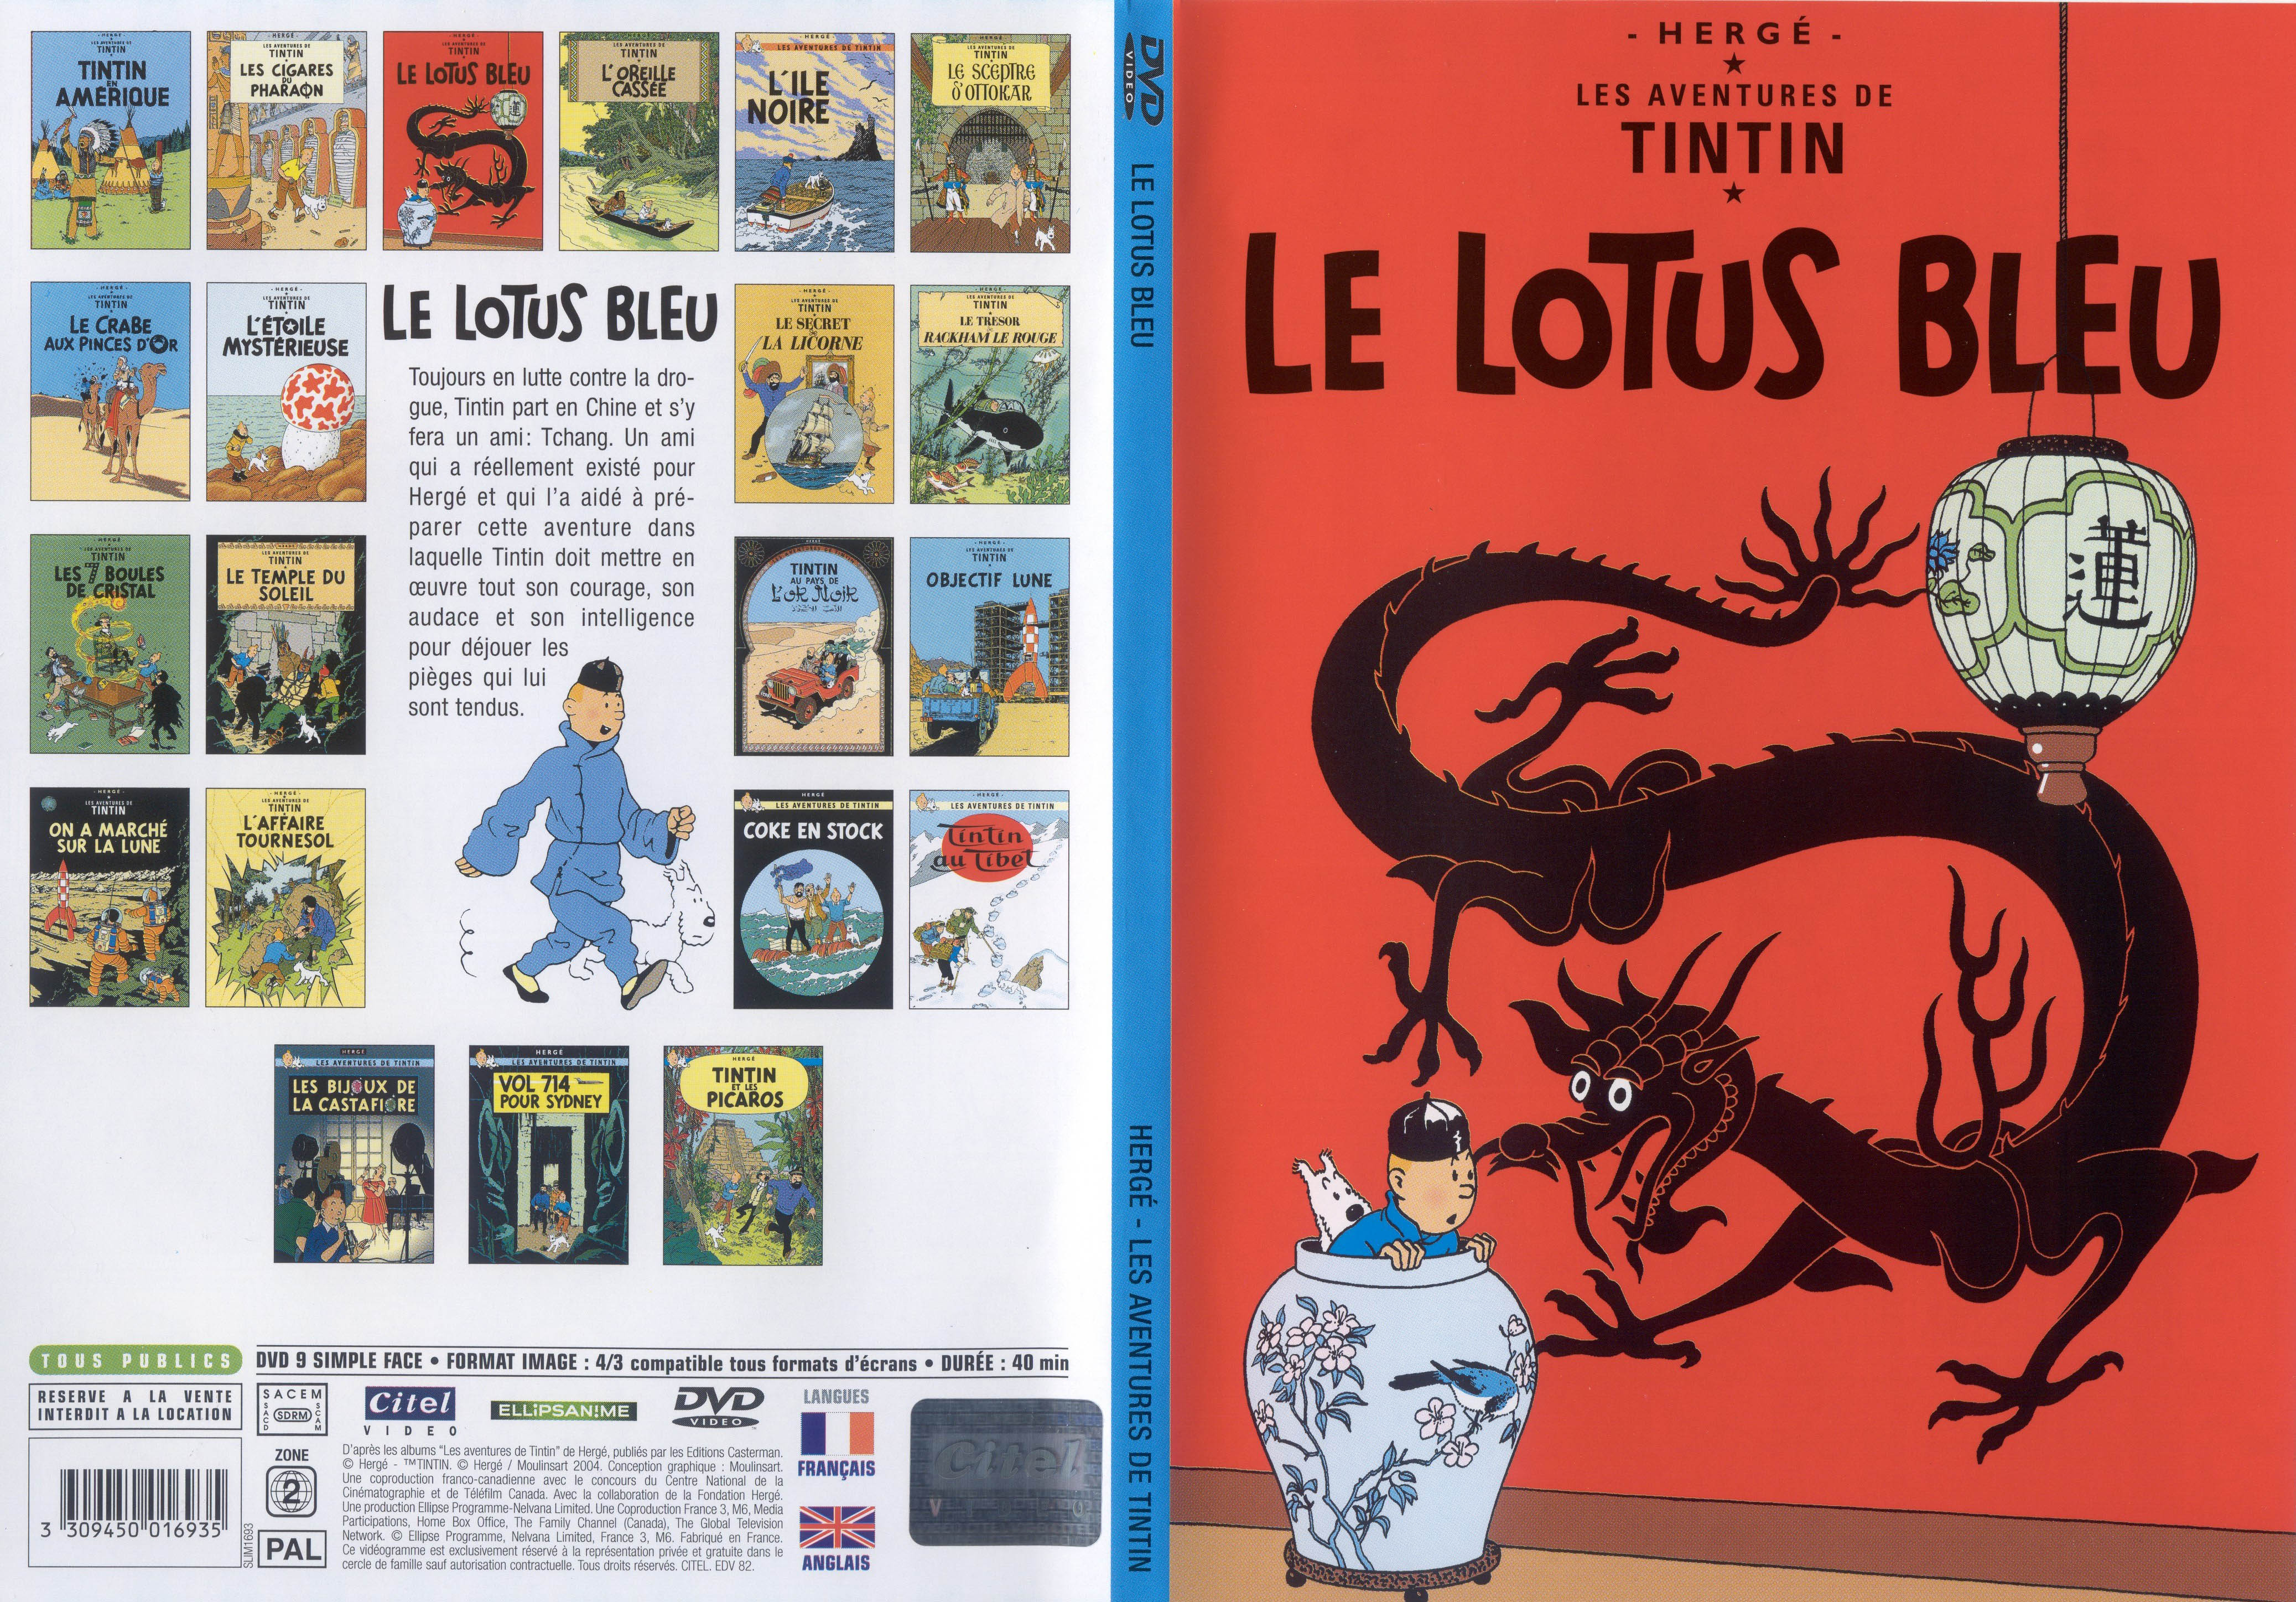 Jaquette DVD Tintin - Le lotus bleu